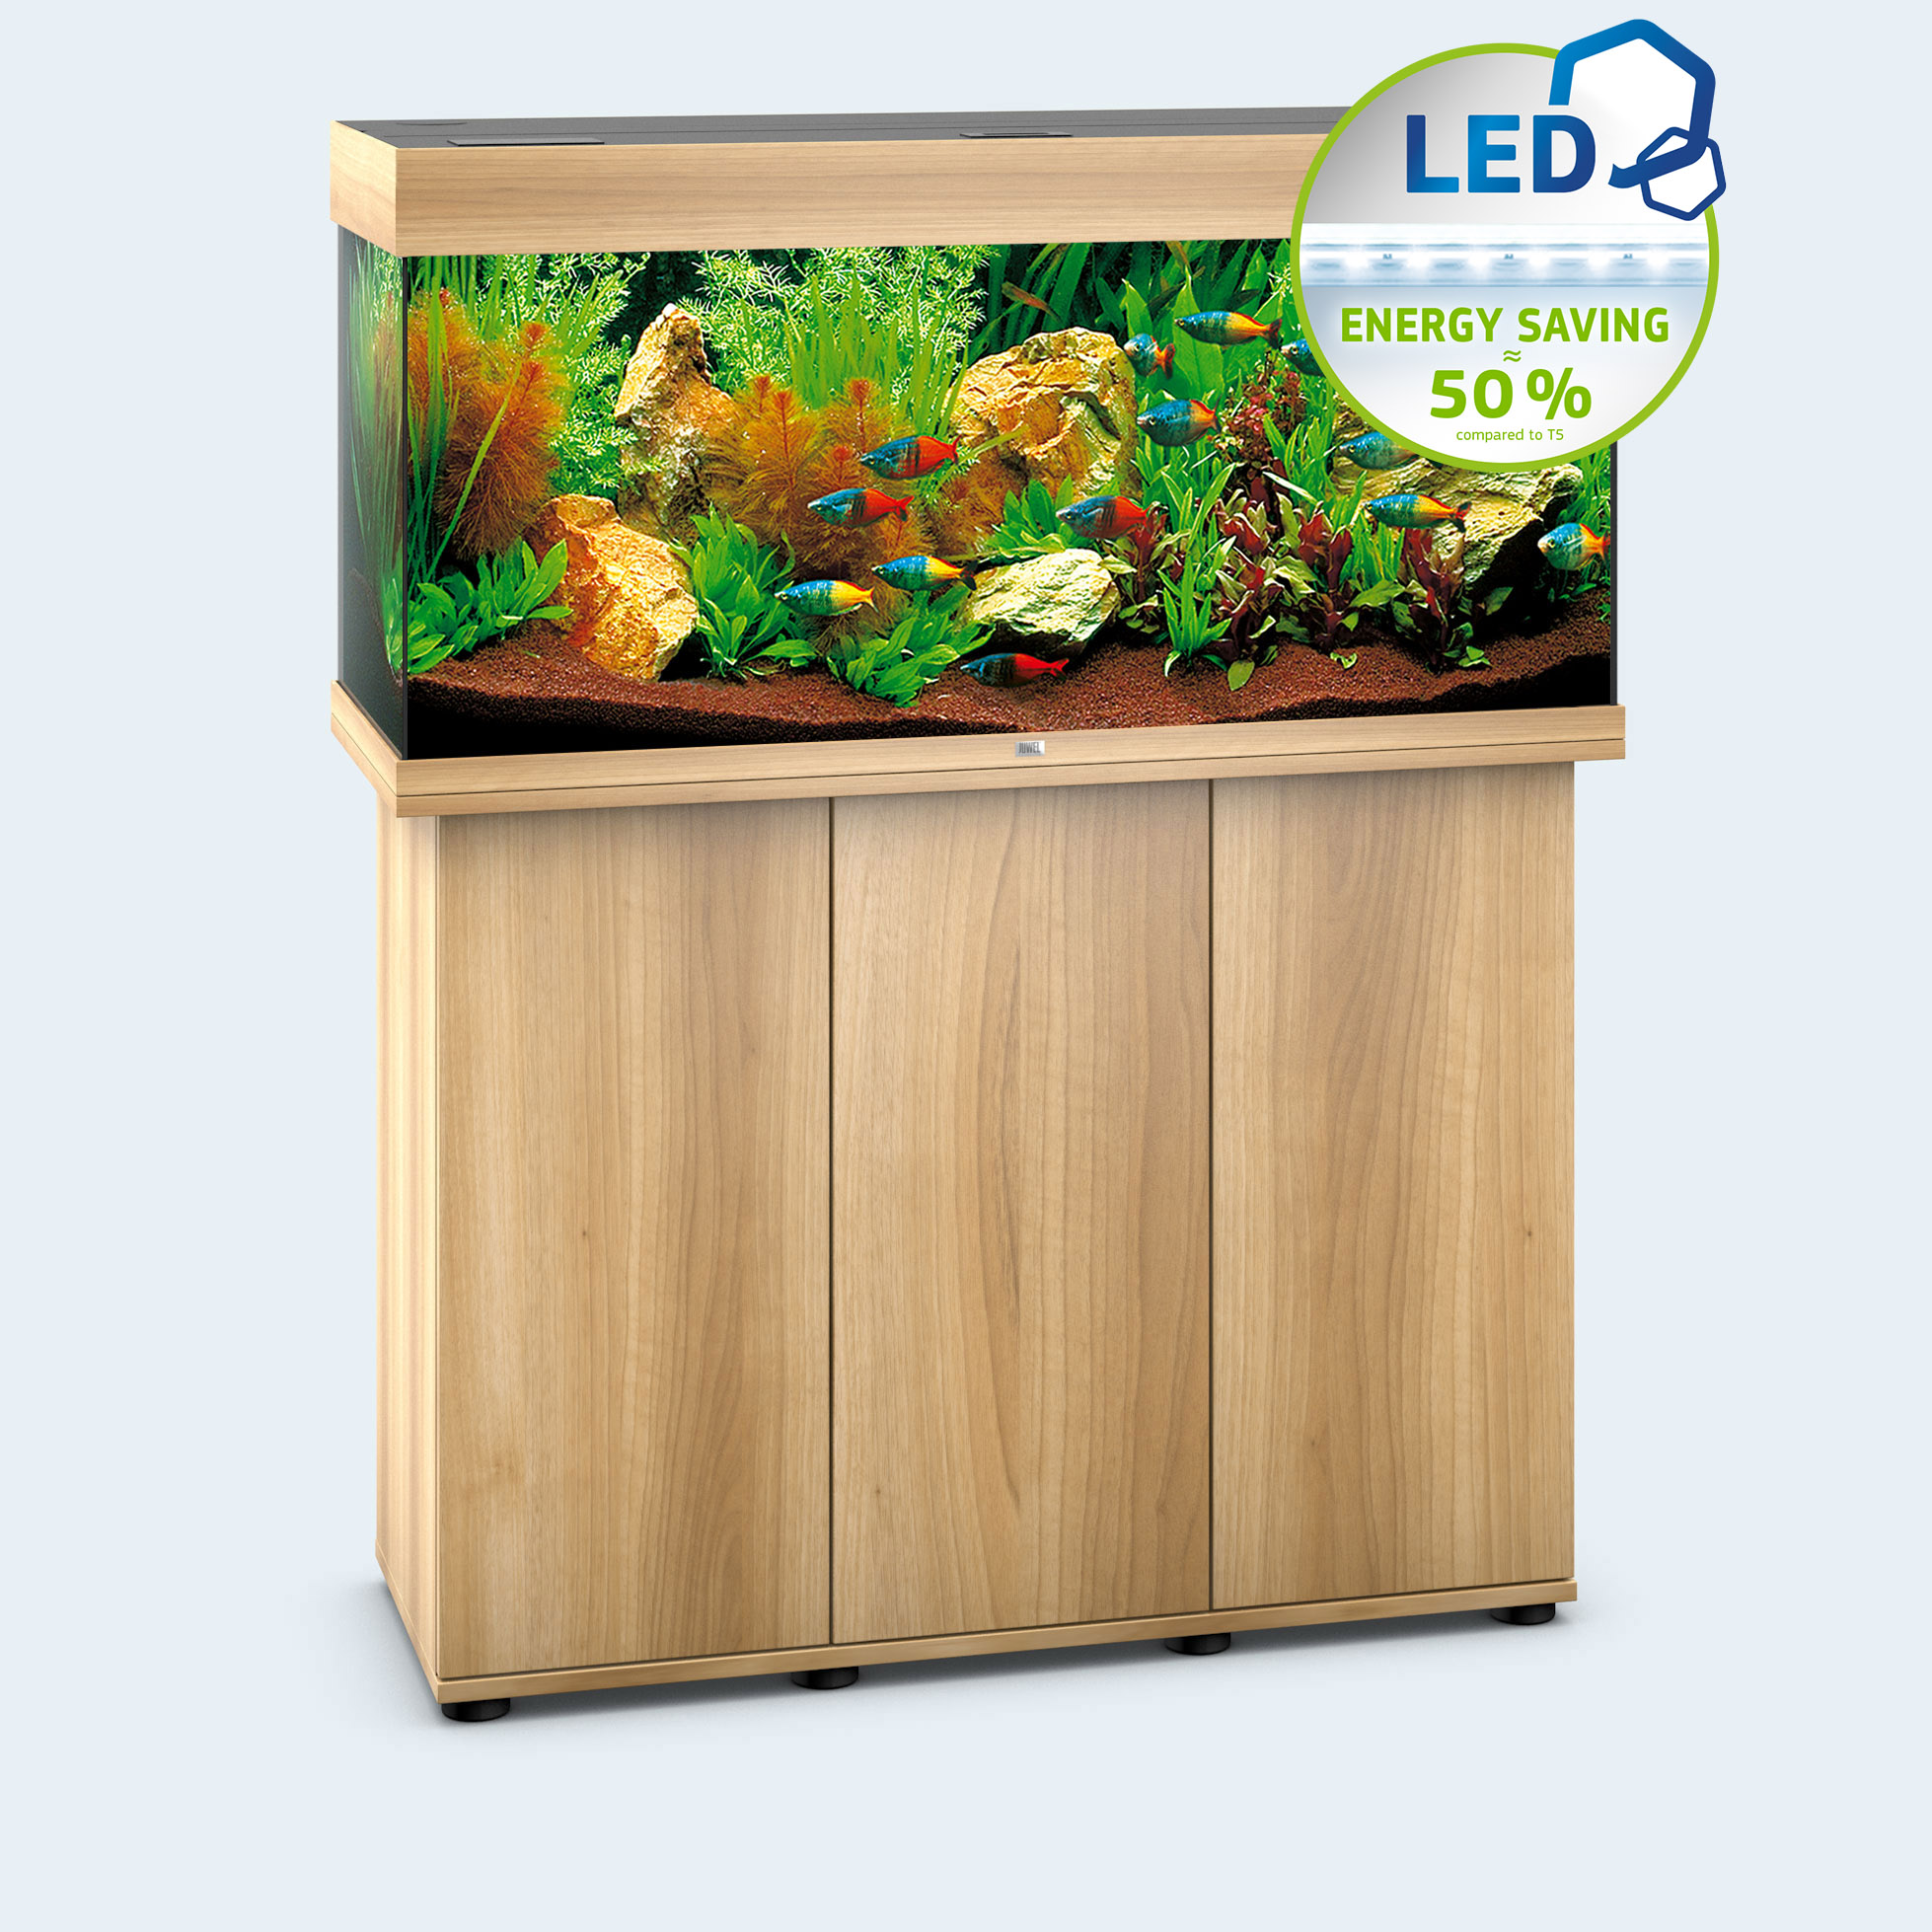 Available in Light Wood